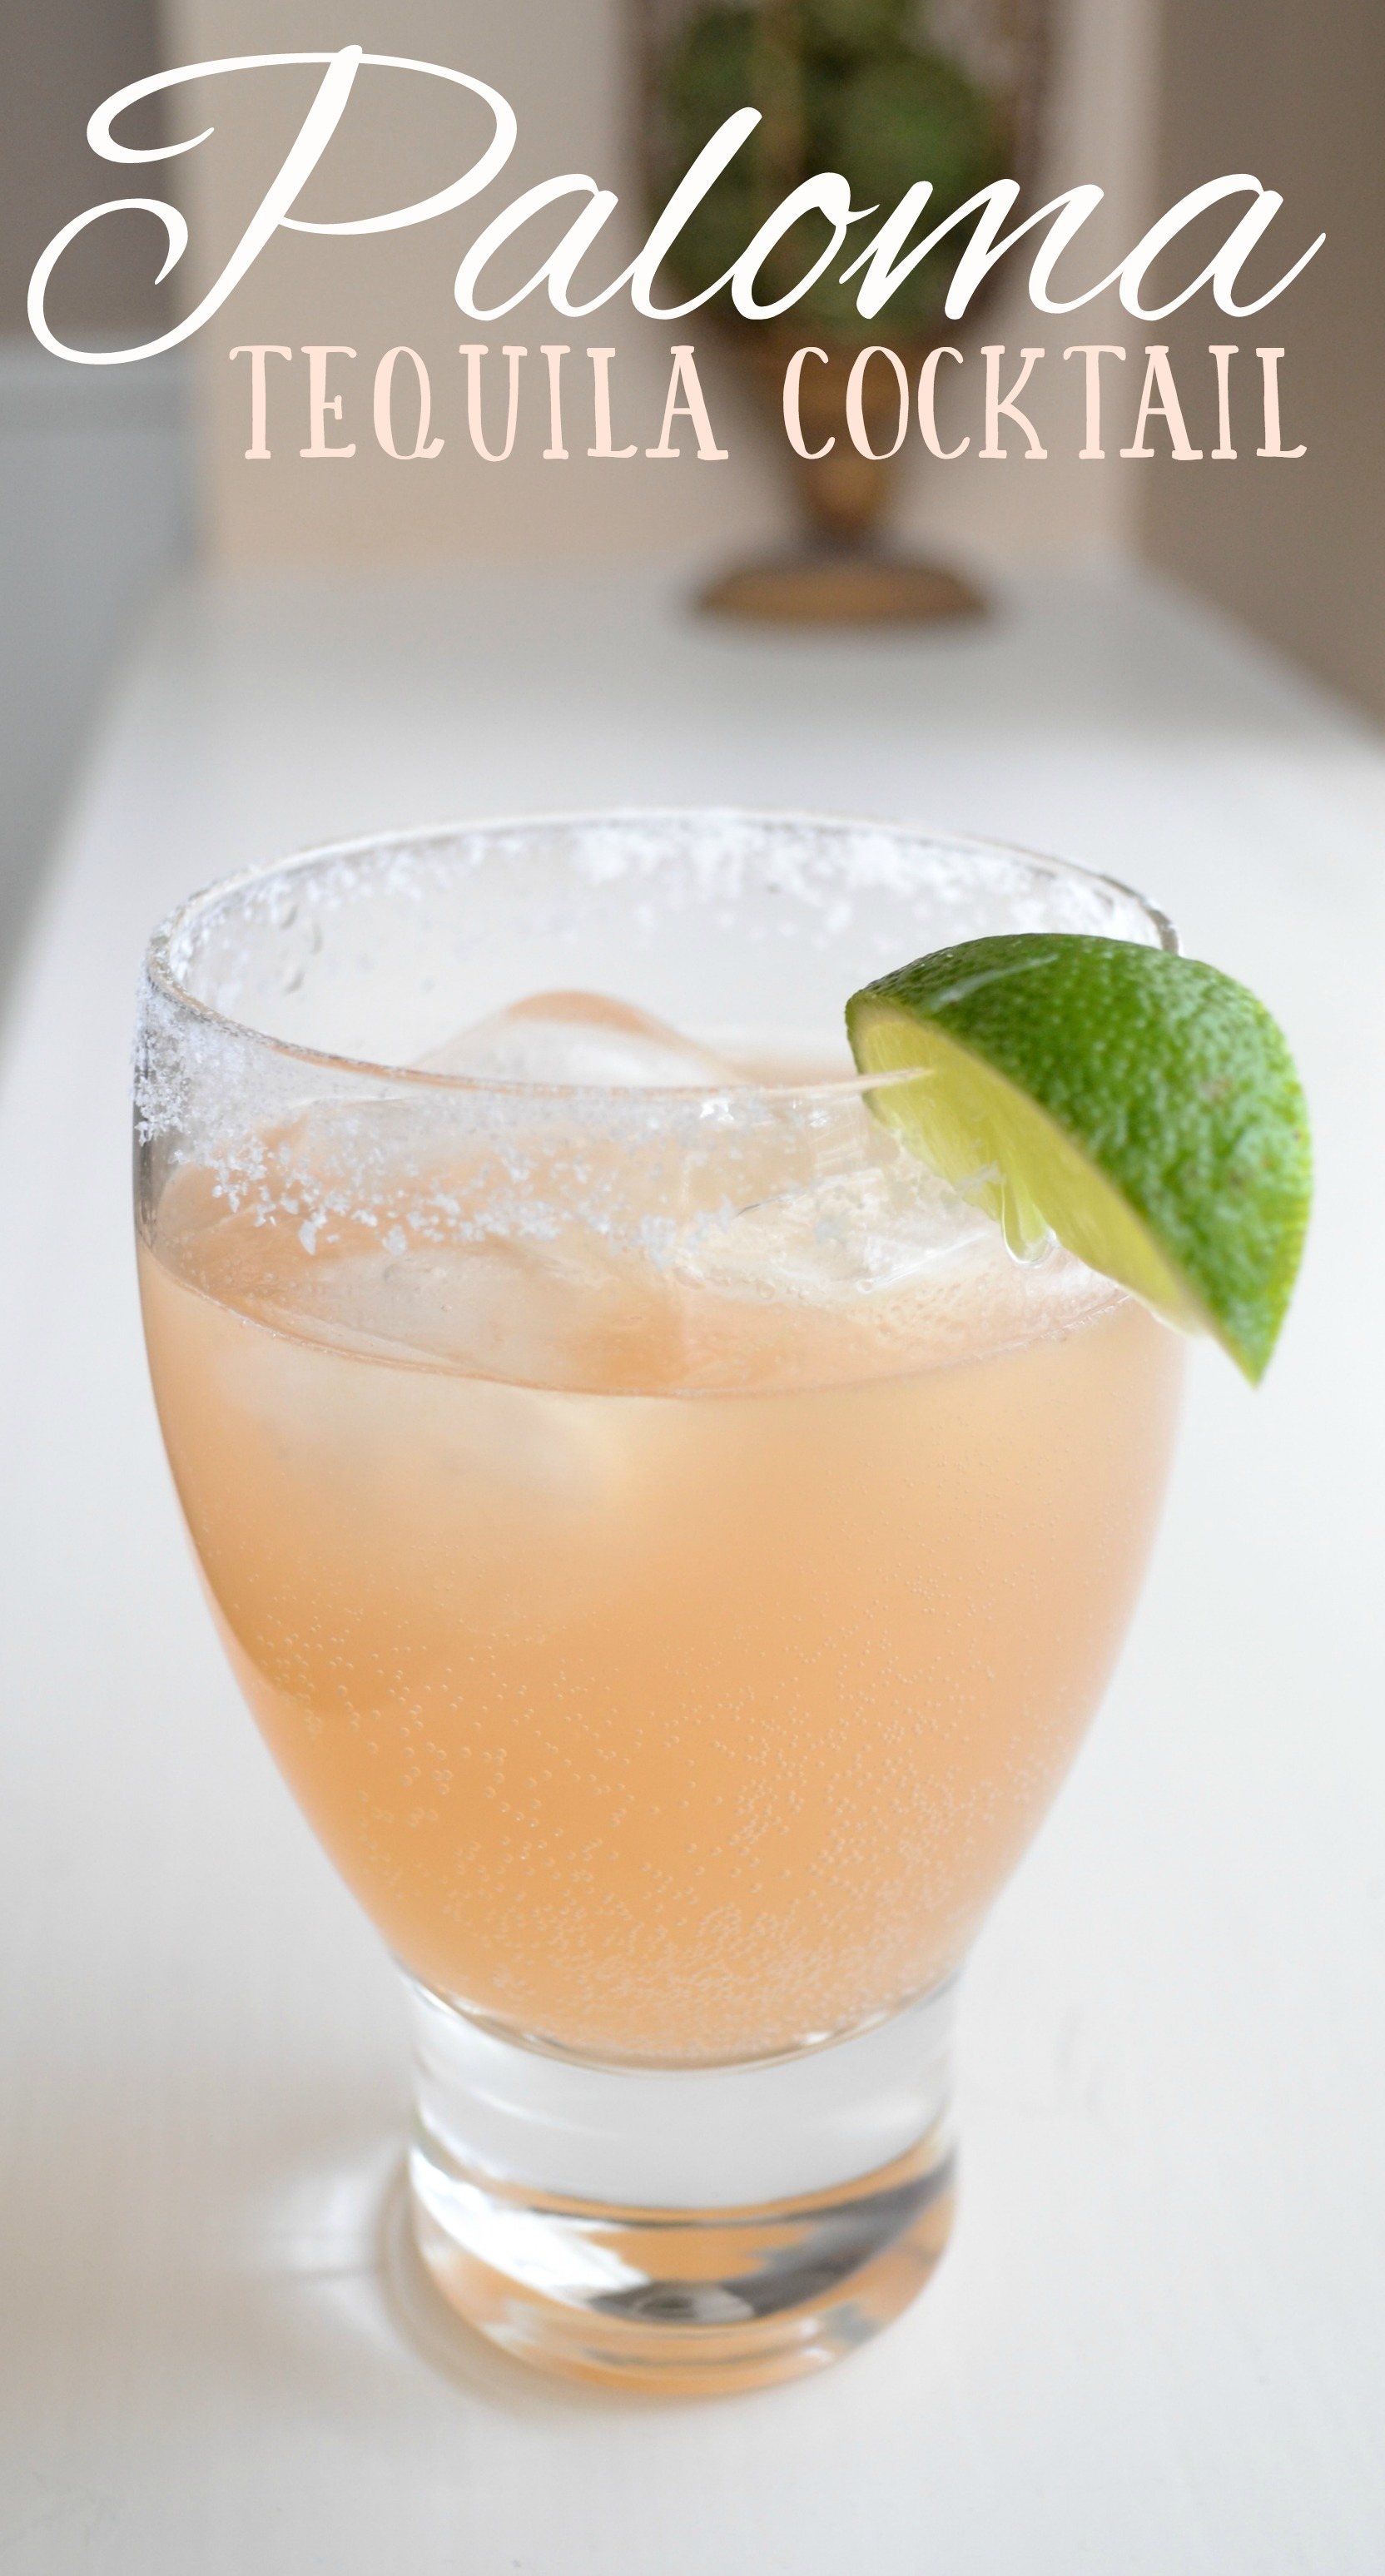 What Can You Mix With Tequila To Make A Drink